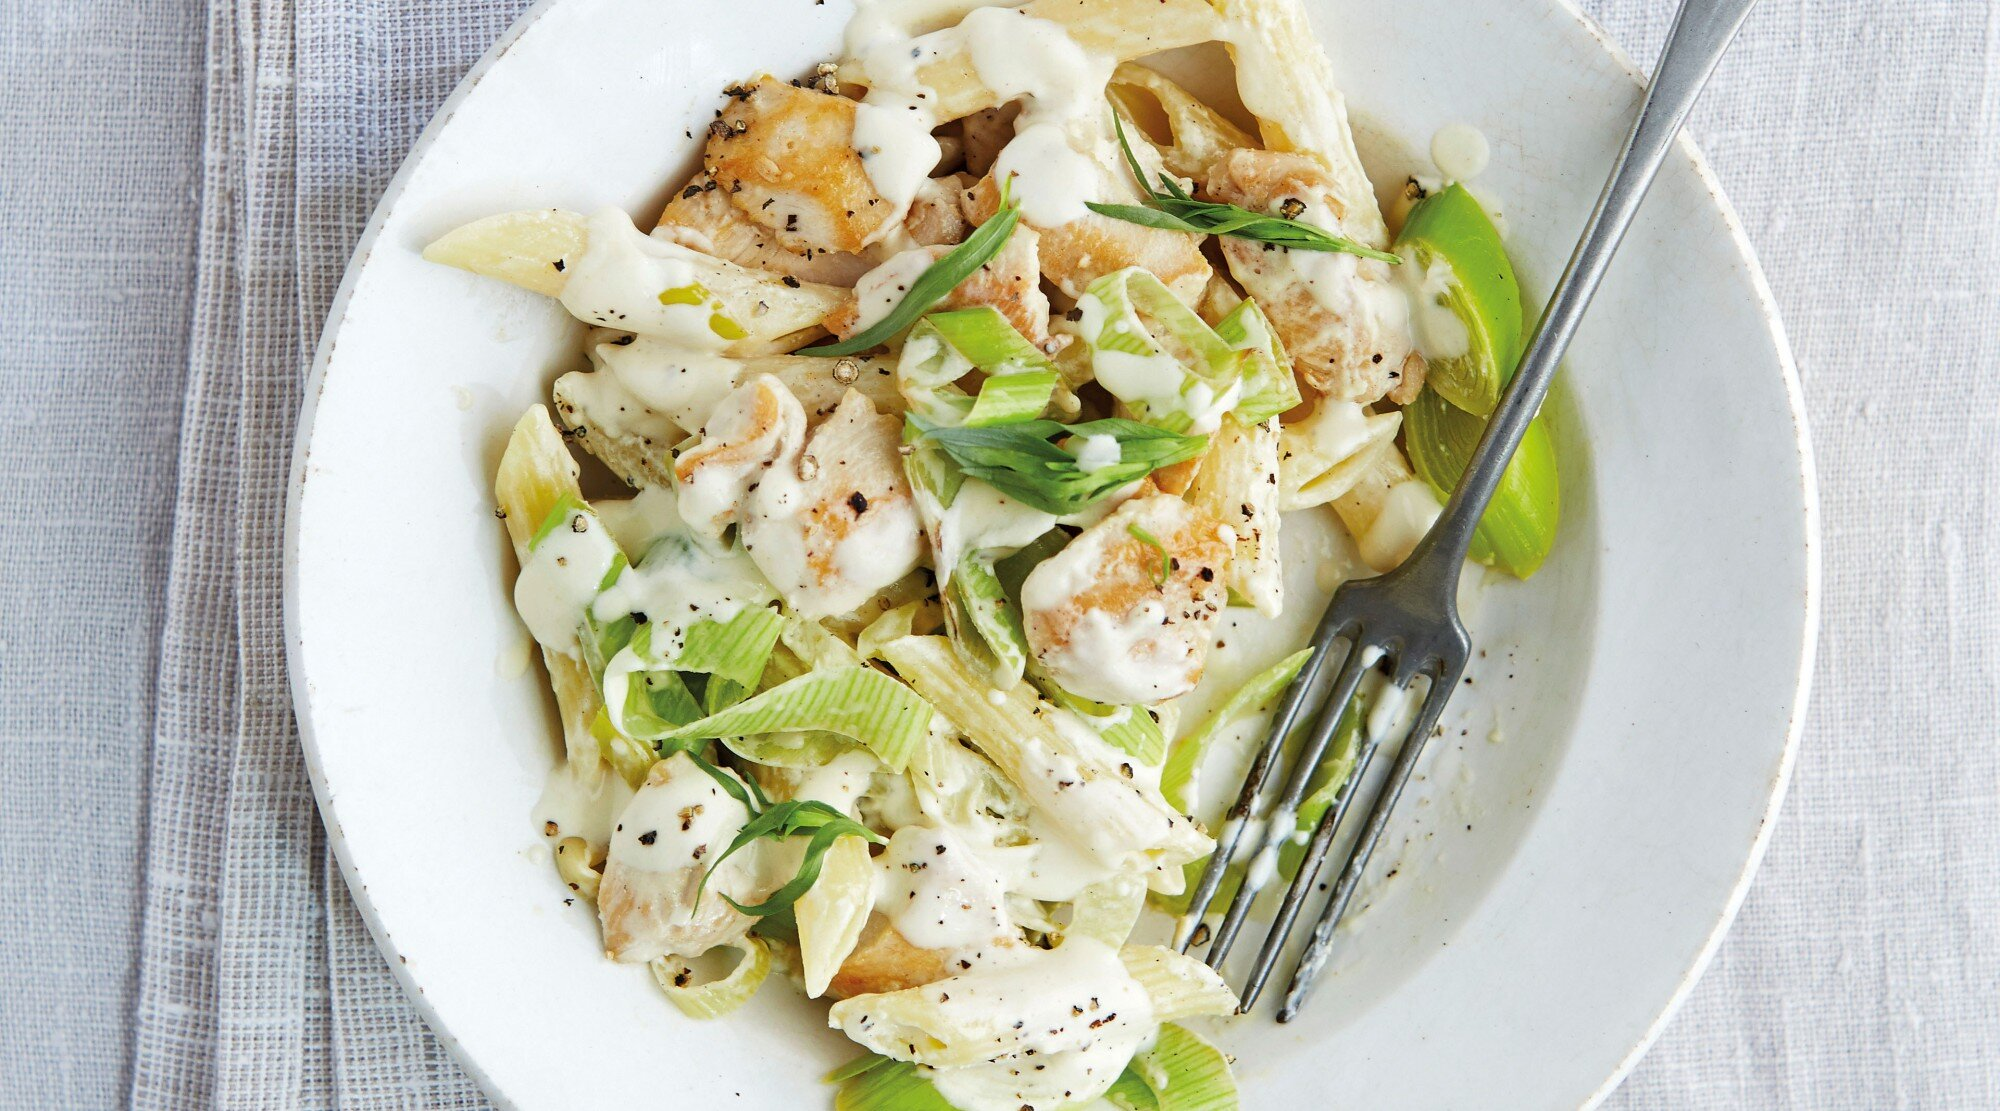 Chicken and Leek Pasta by The Splendid Table